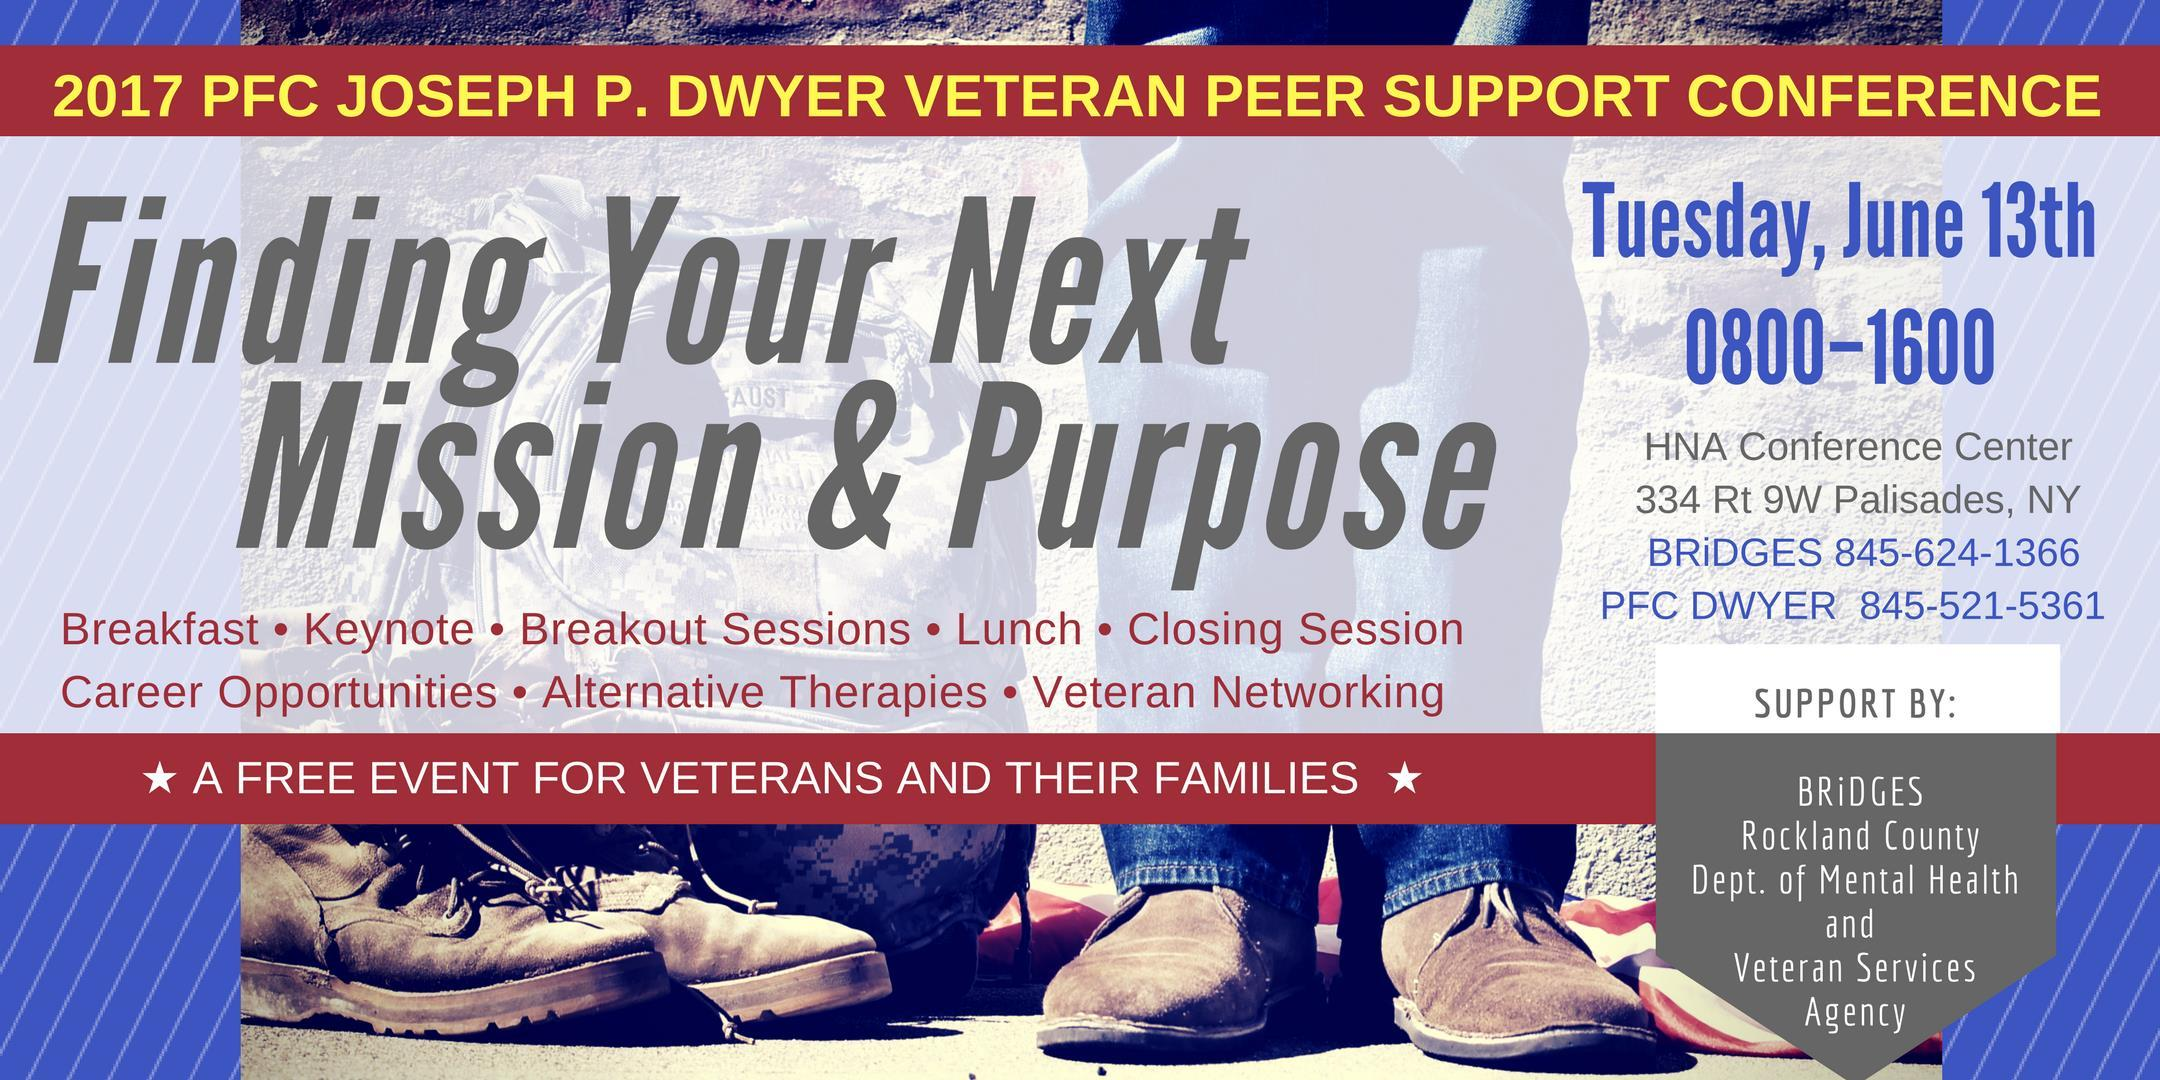 2017 PFC Joseph P. Dwyer Veteran Peer Support